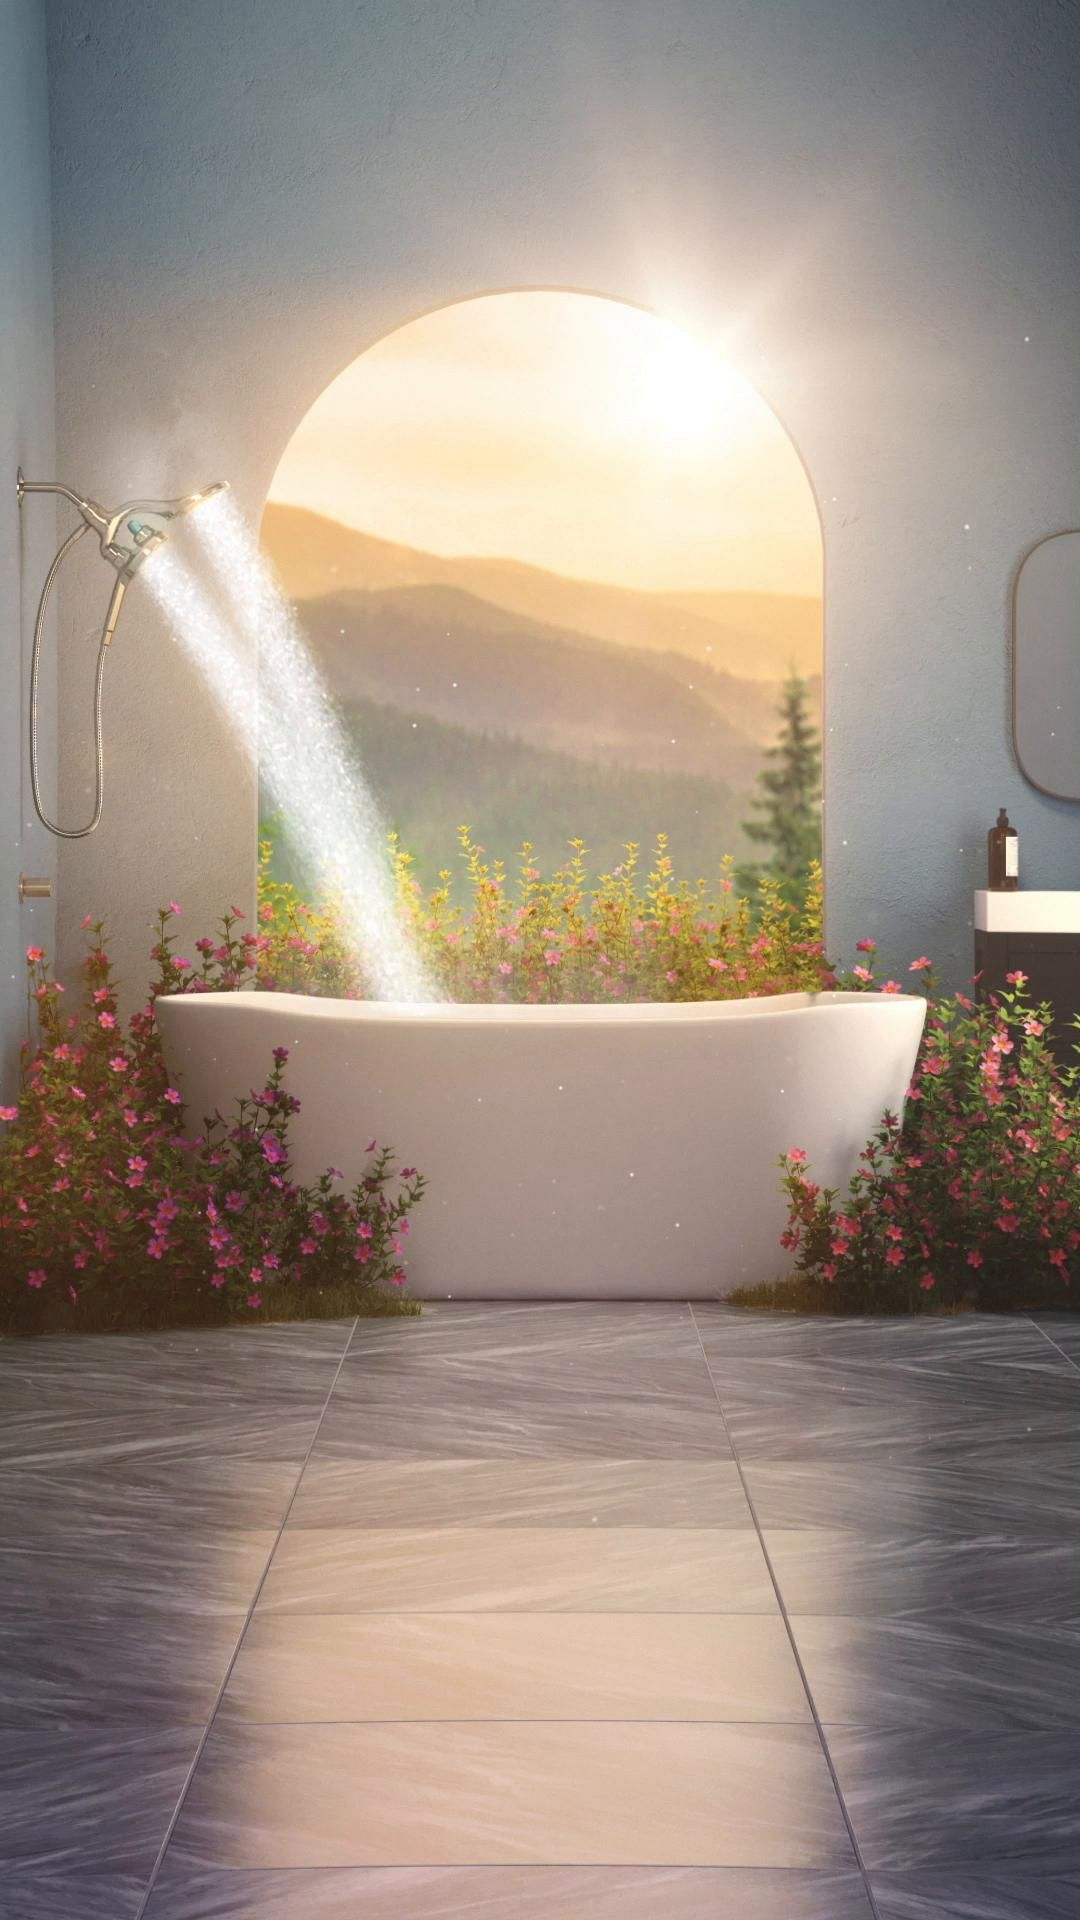 Moen® Aromatherapy Handshower with INLY™ technolog